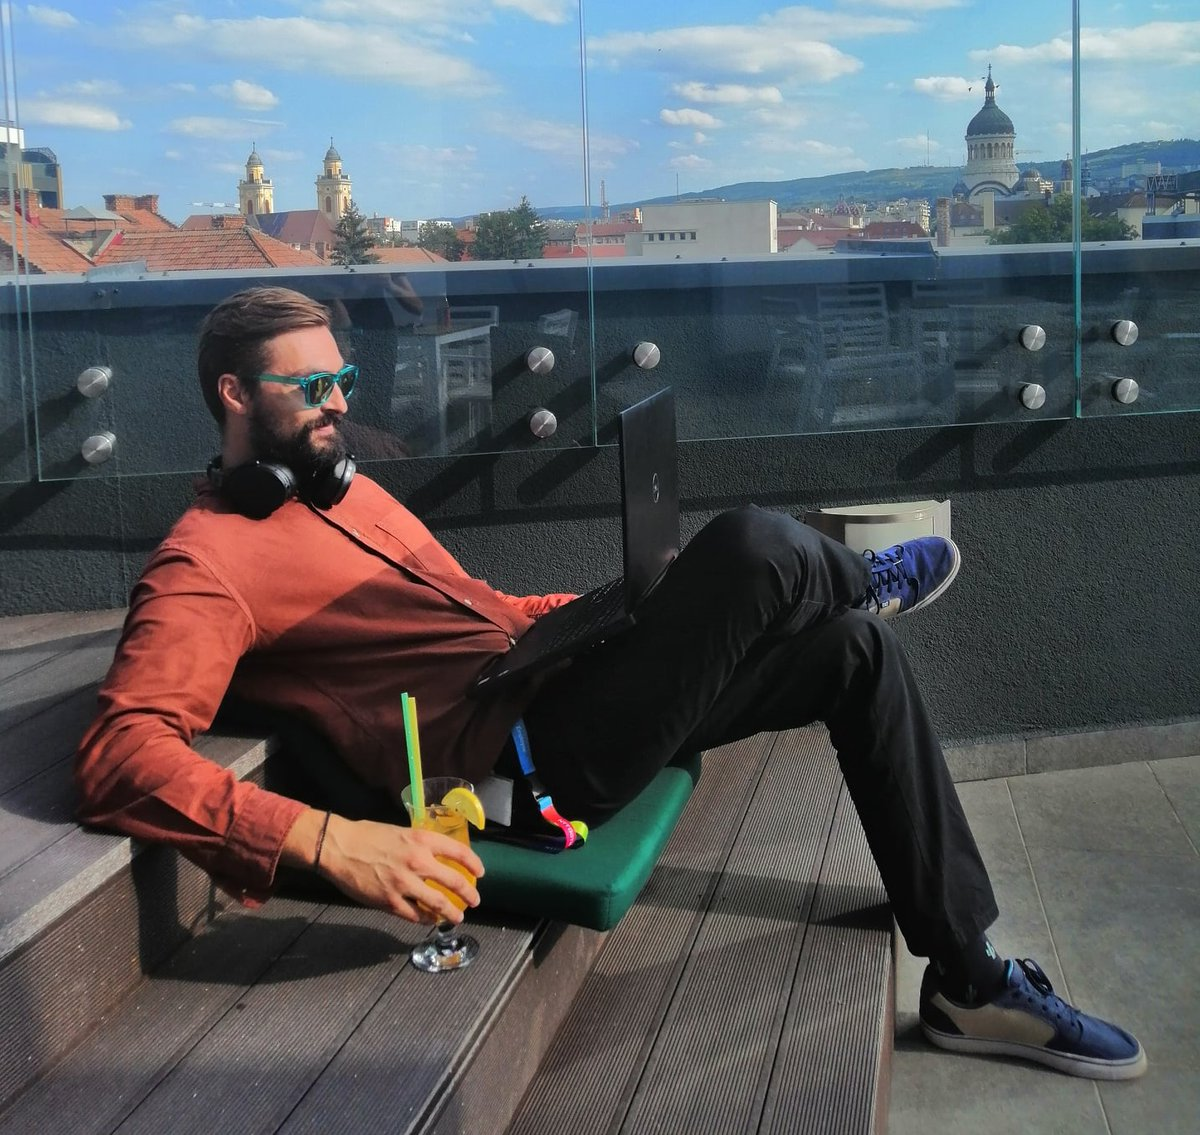 Days are better when you prepare for your online meeting on the terrace, with a great view and fresh orange juice! #LifeAtNTTDATA #NTTDATARomania #NTTDATATower #clujnapoca #clujview #bestoftheday https://t.co/g8TarzRTmp